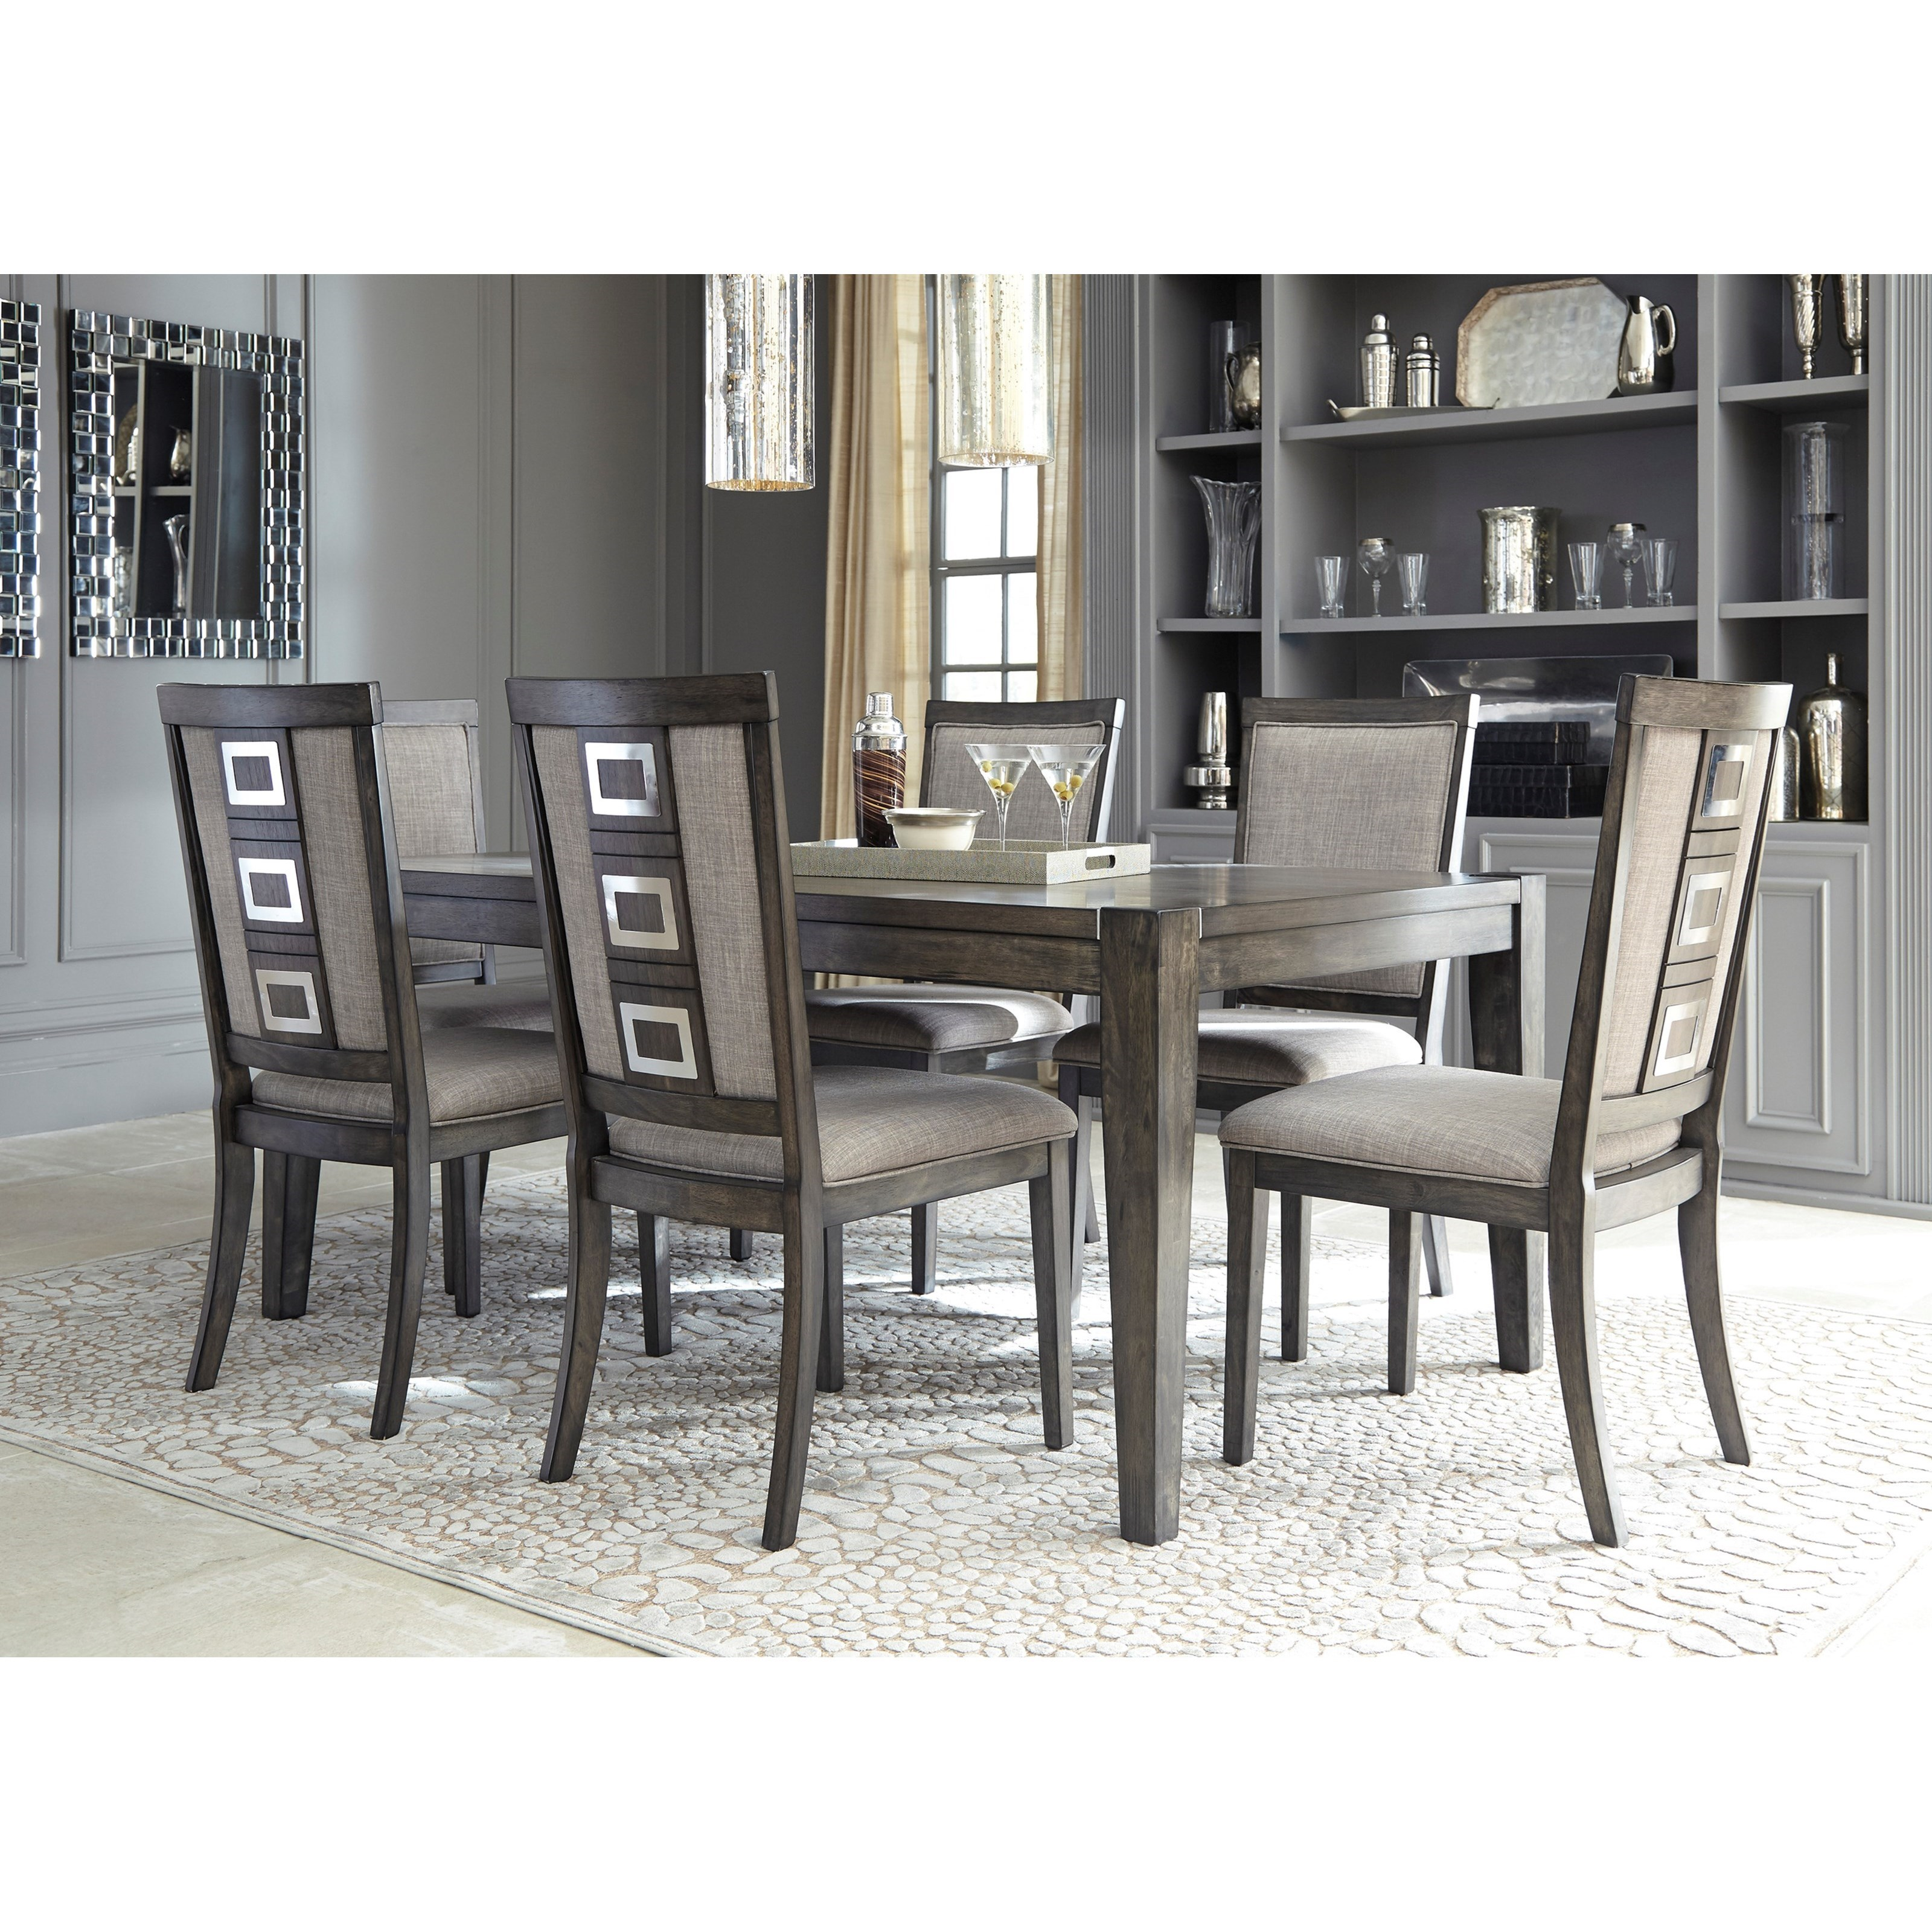 Ashley Dining Room Chairs Signature Design By Ashley Chadoni D624 01 Contemporary